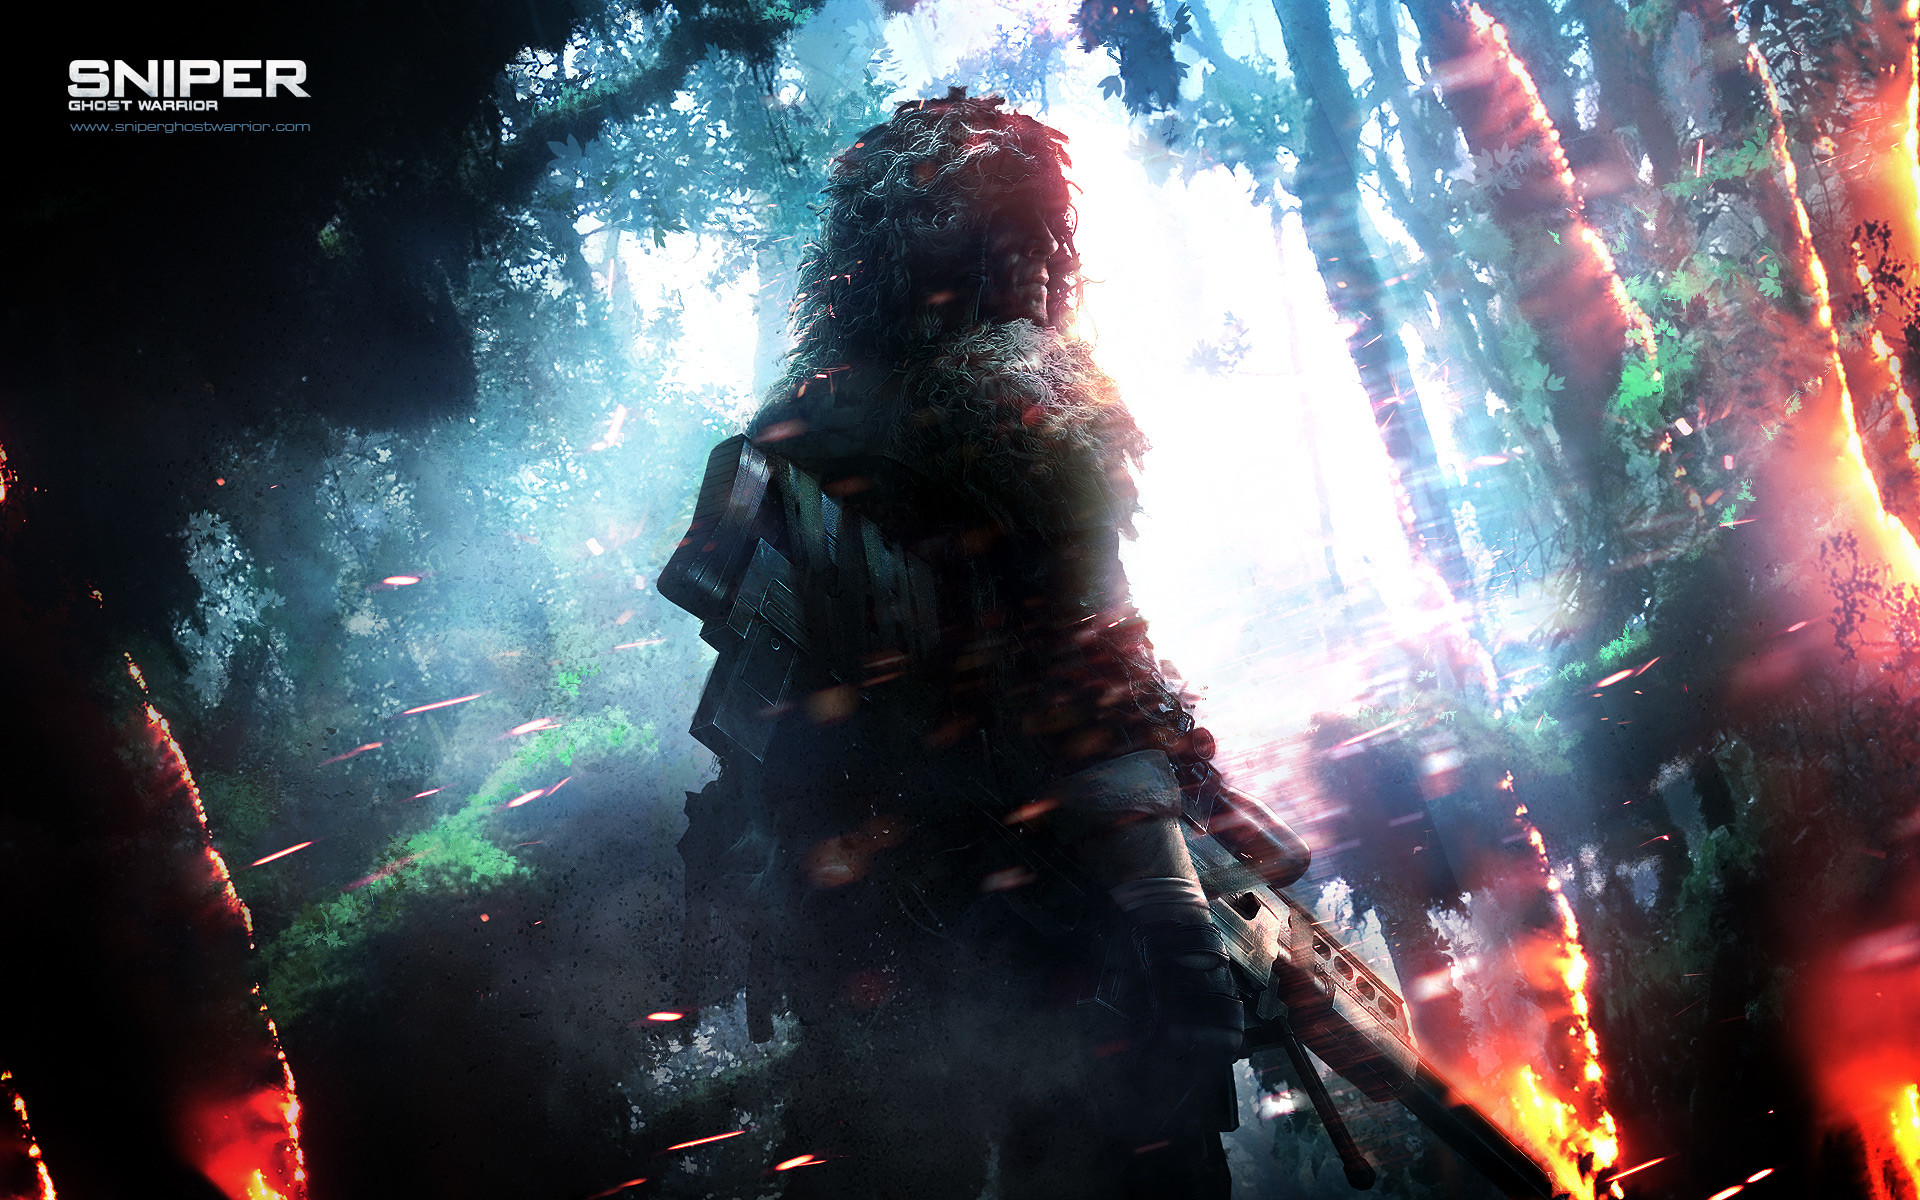 Sniper Ghost Warrior Wallpapers | HD Wallpapers